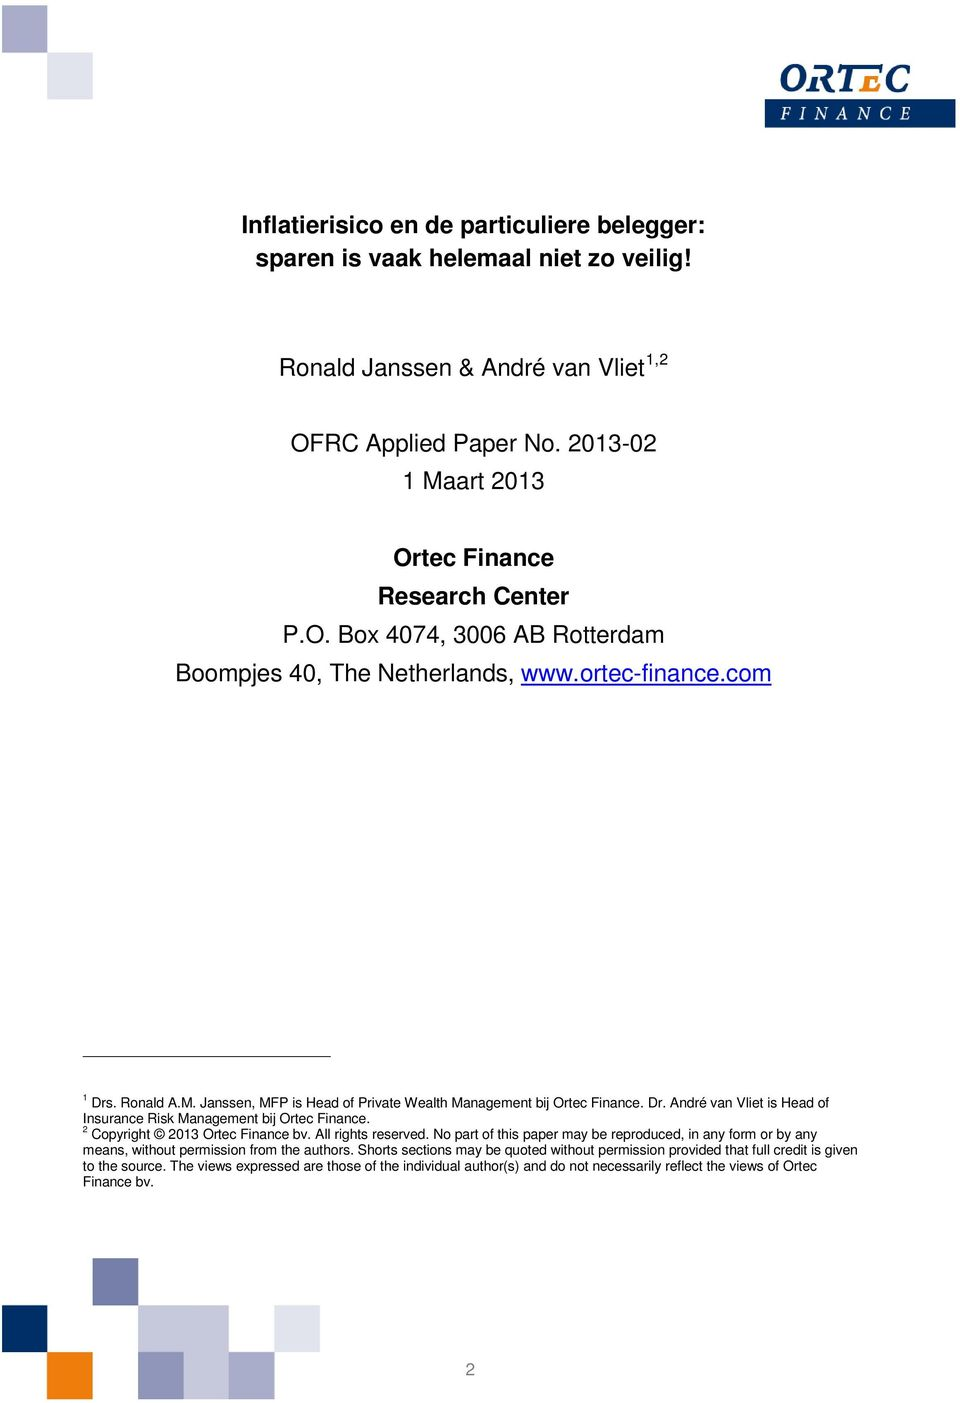 2 Copyright 2013 Ortec Finance bv. All rights reserved. No part of this paper may be reproduced, in any form or by any means, without permission from the authors.